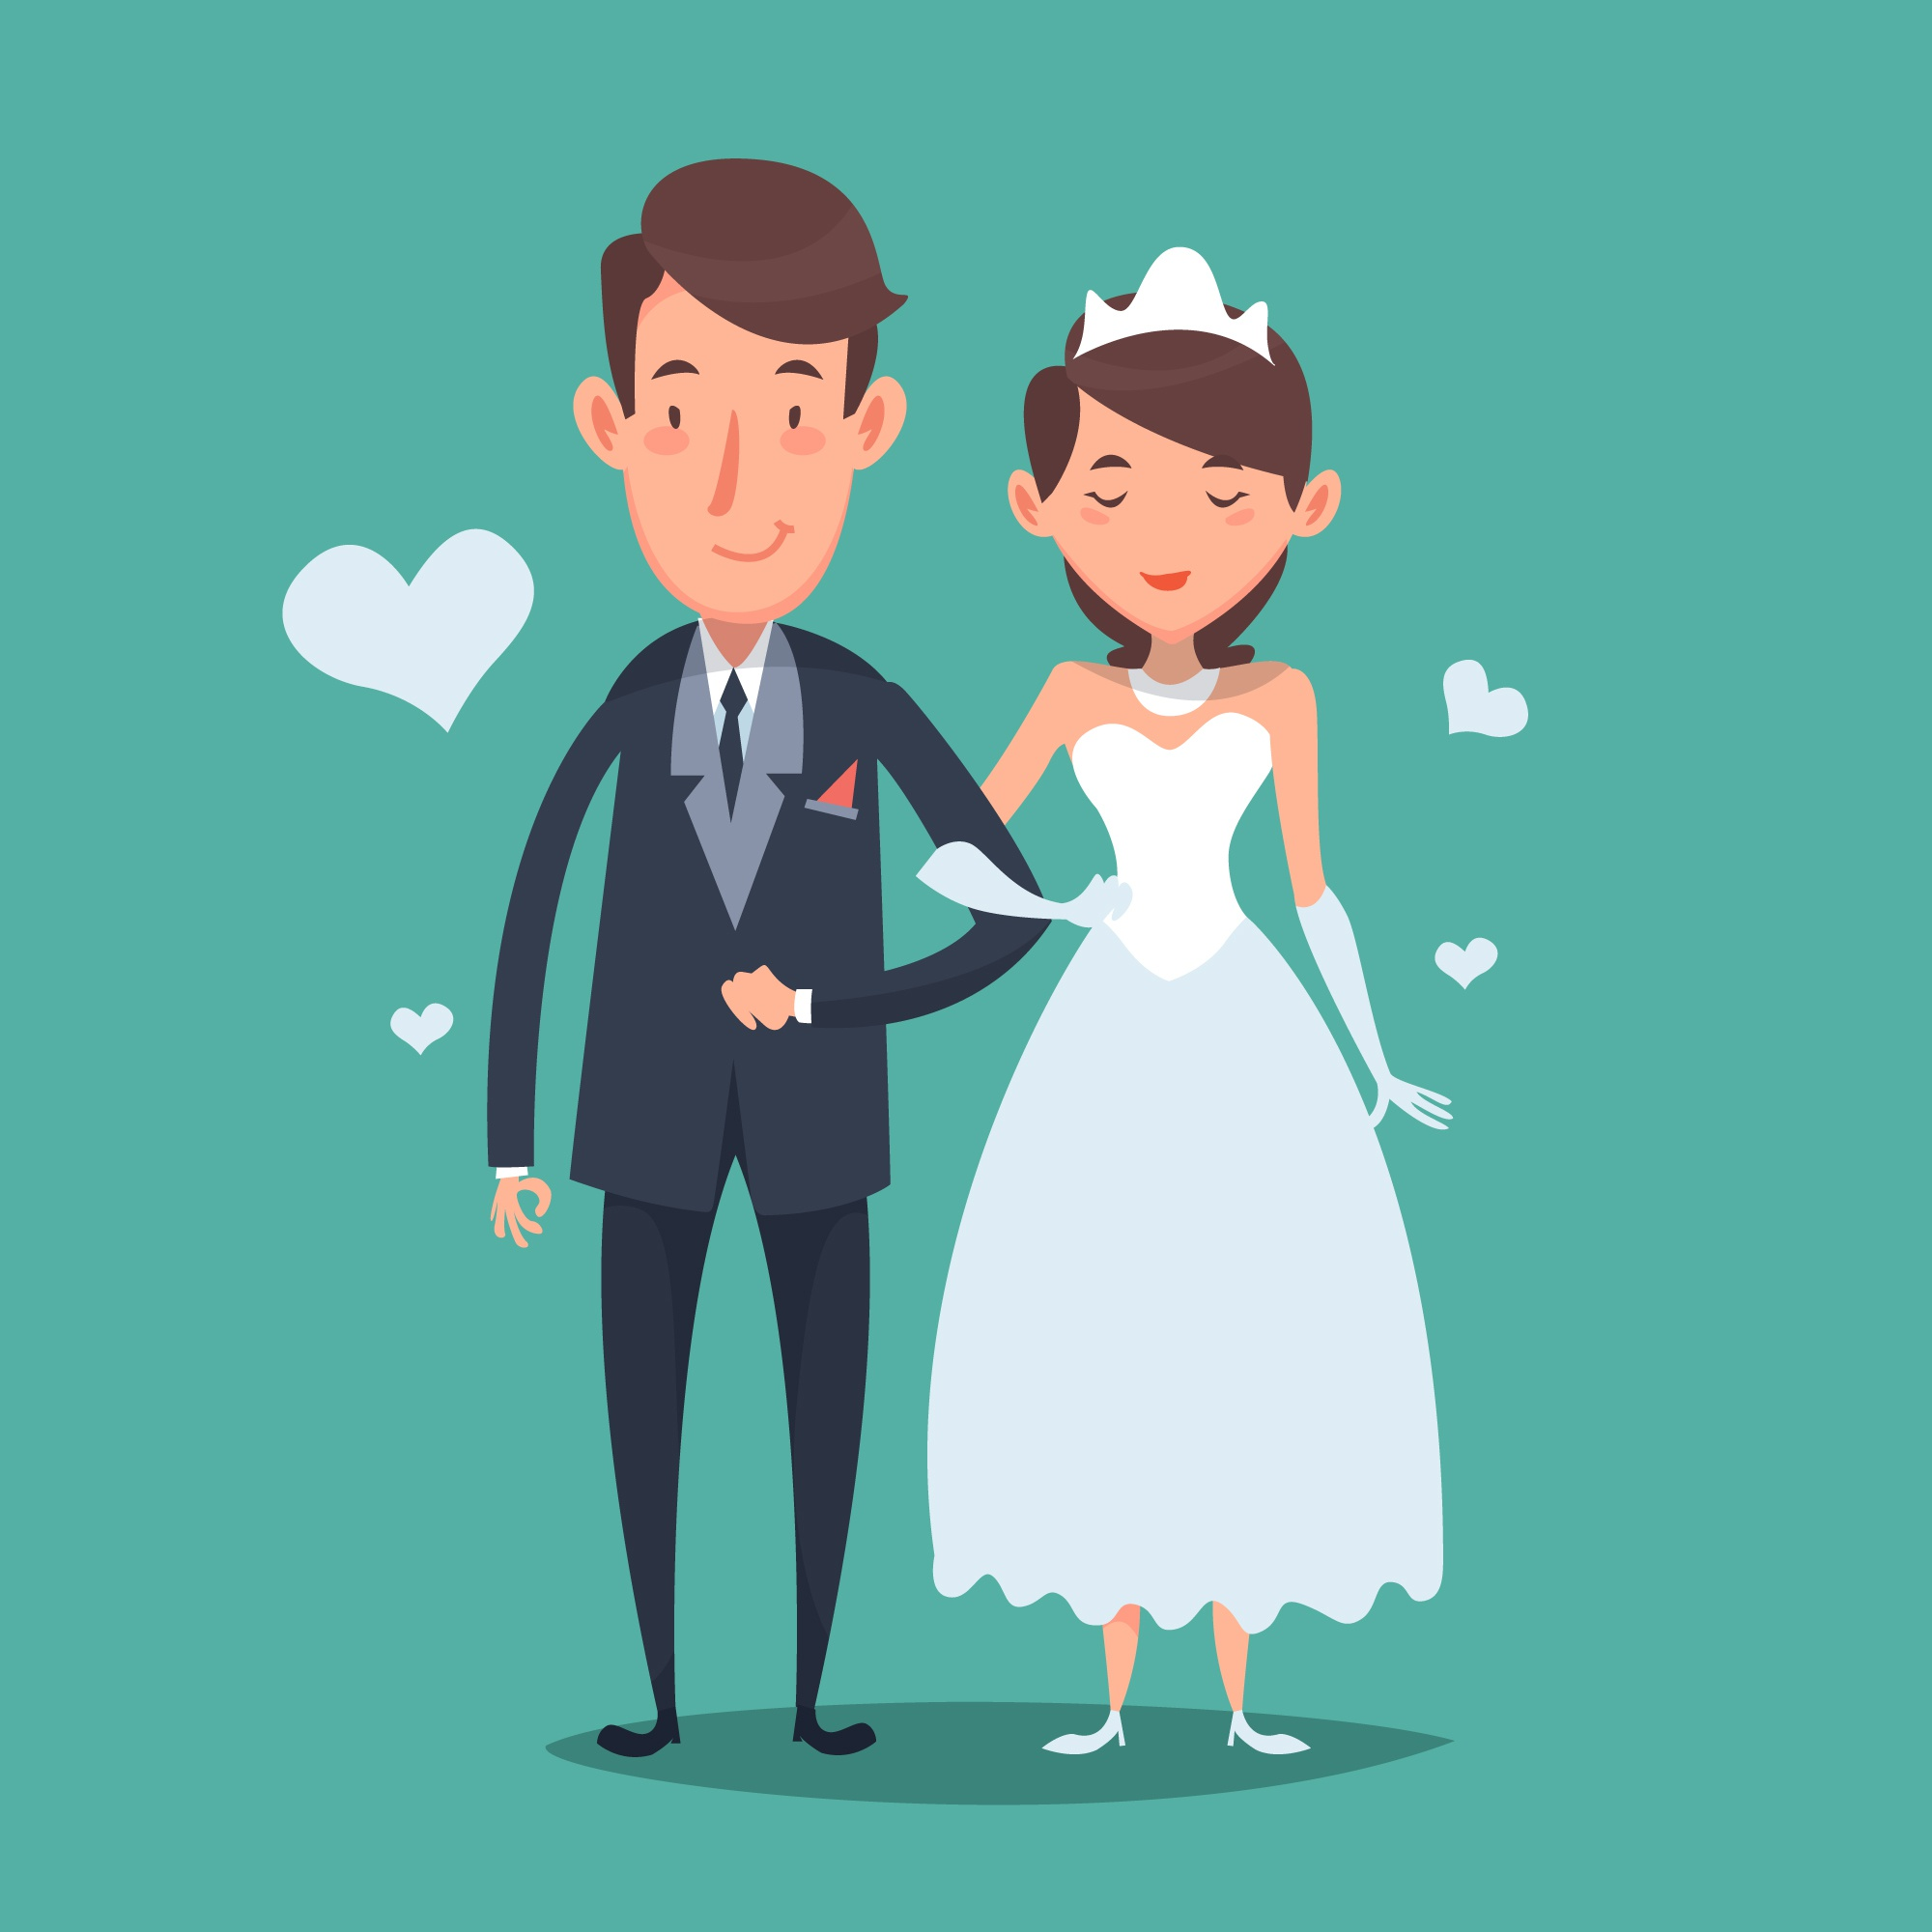 Nice wedding couple in cartoon style